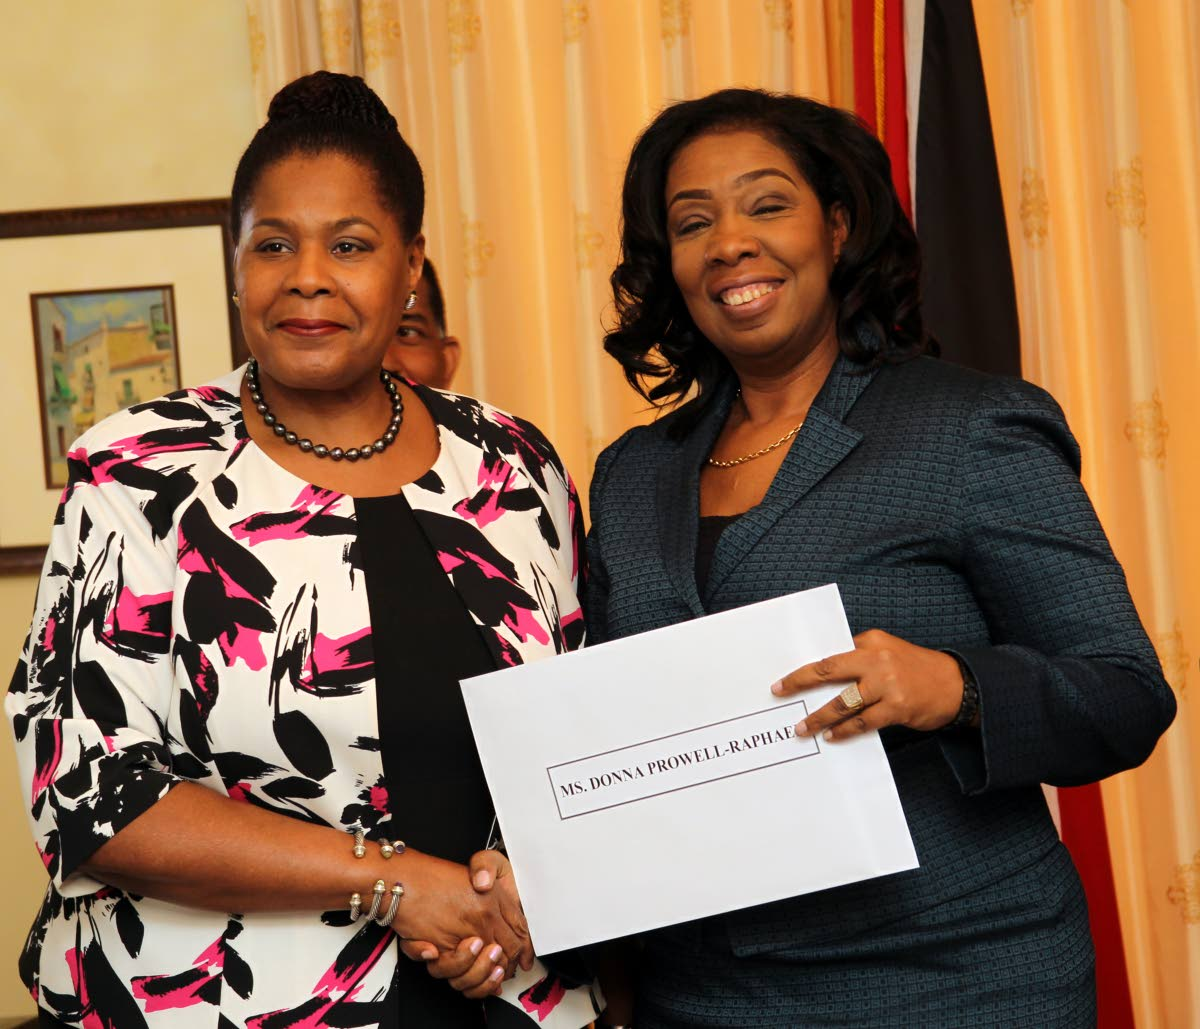 President Paula-Mae Weekes poses during her  first official duty, the swearing-in of Chairman of the Equal Opportunity Tribunal, Mrs Donna Prowell-Raphael. Photo by Rattan Jadoo.